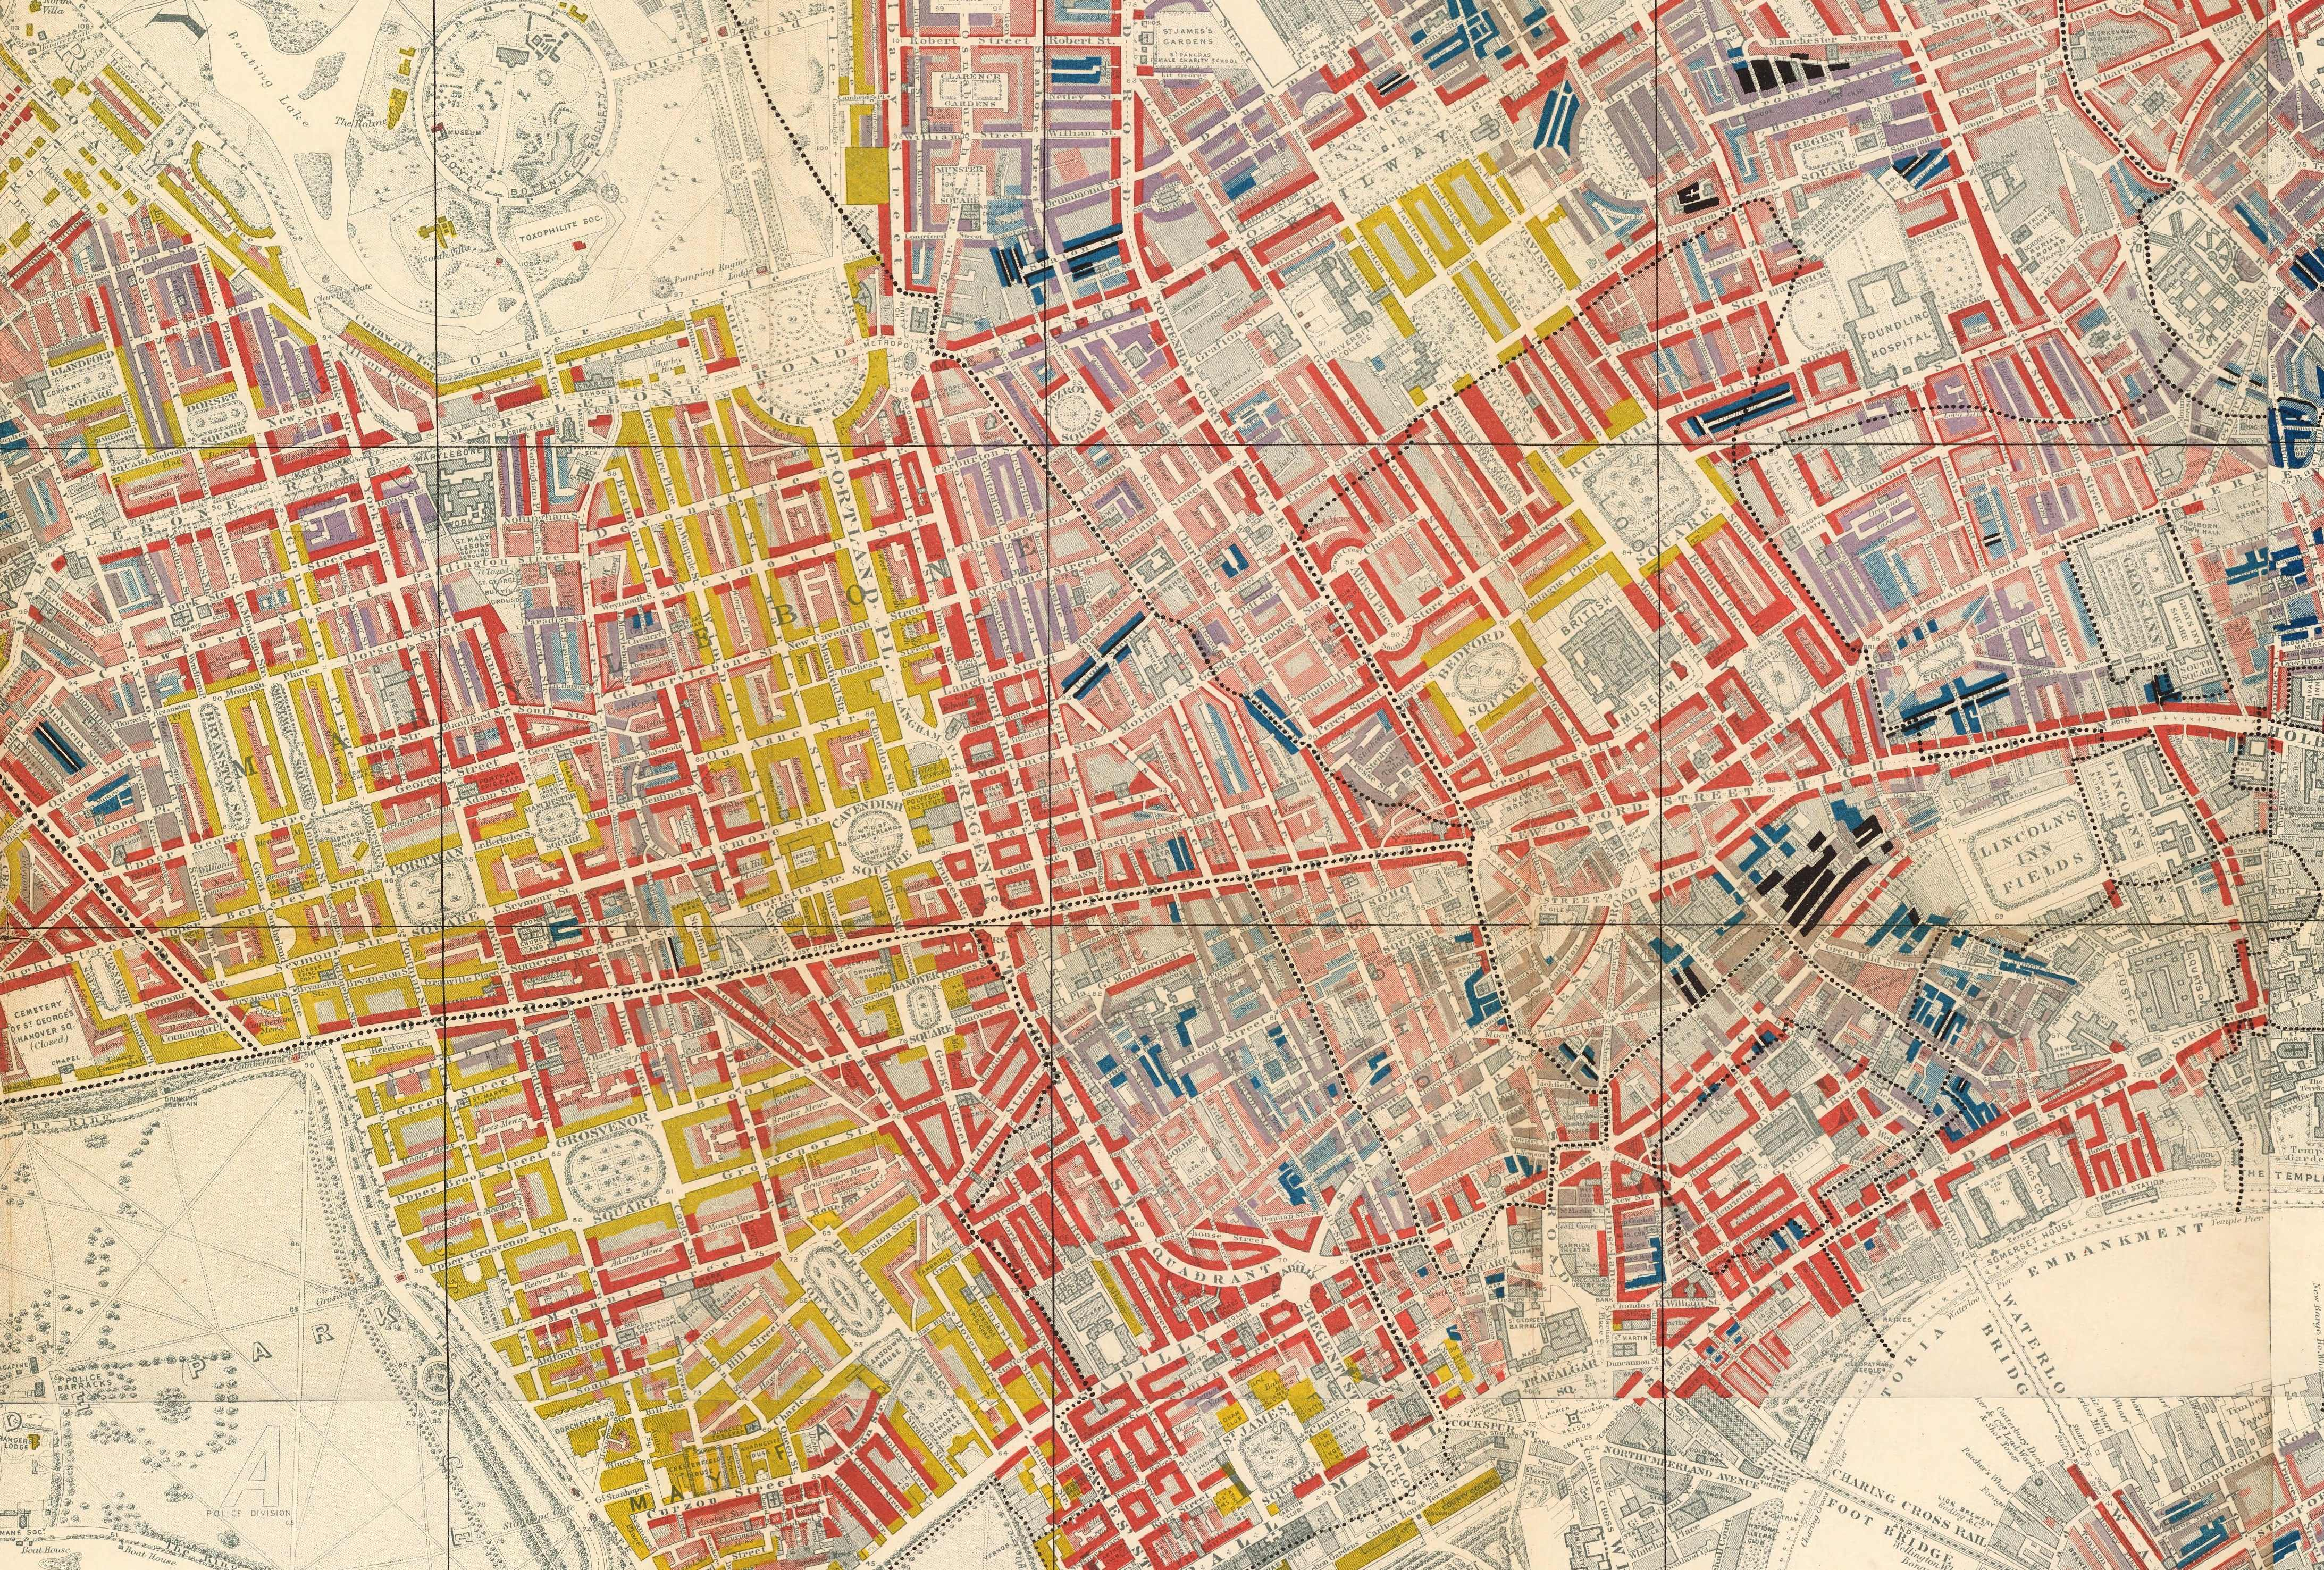 Map Soho London.The Narrow Streets And Meaner Houses Of Soho In 19th Century